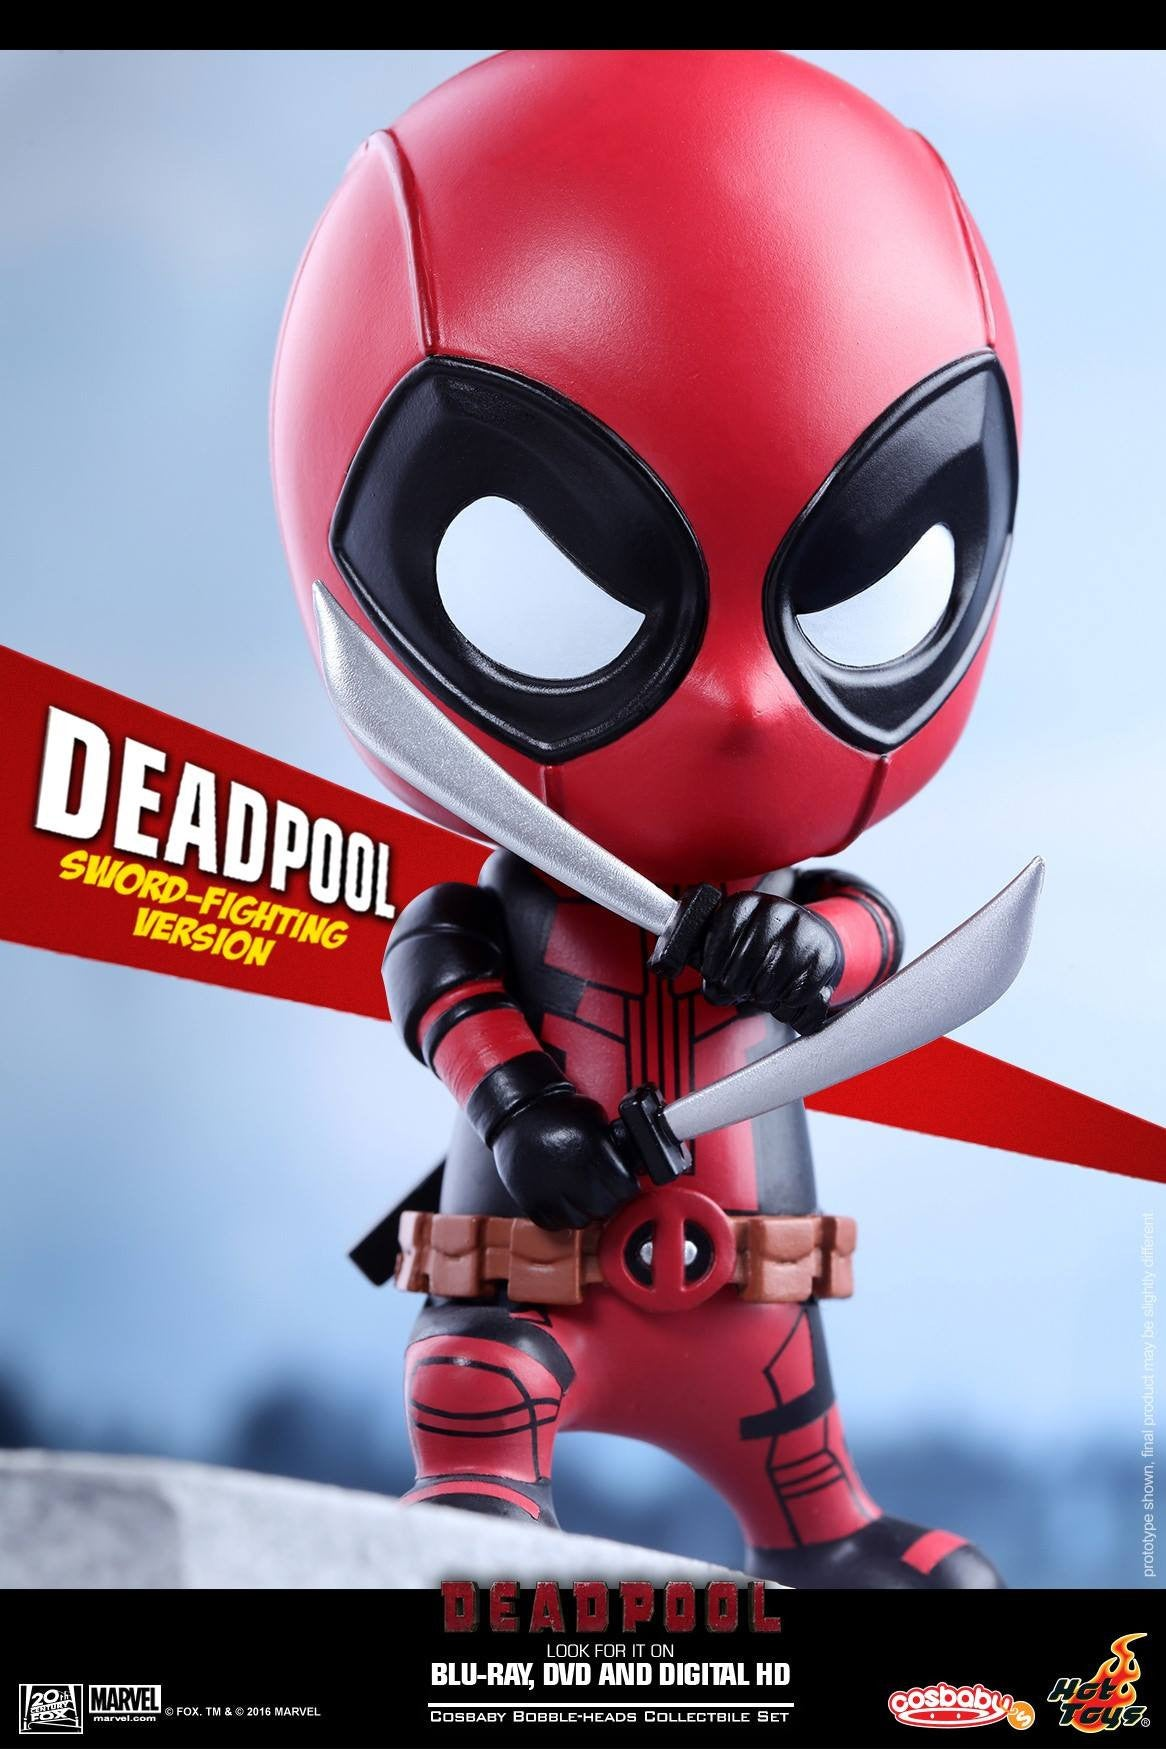 Hot Toys - COSB220 - Deadpool (Sword-Fighting Version) Cosbaby Bobble-Head - Marvelous Toys - 3